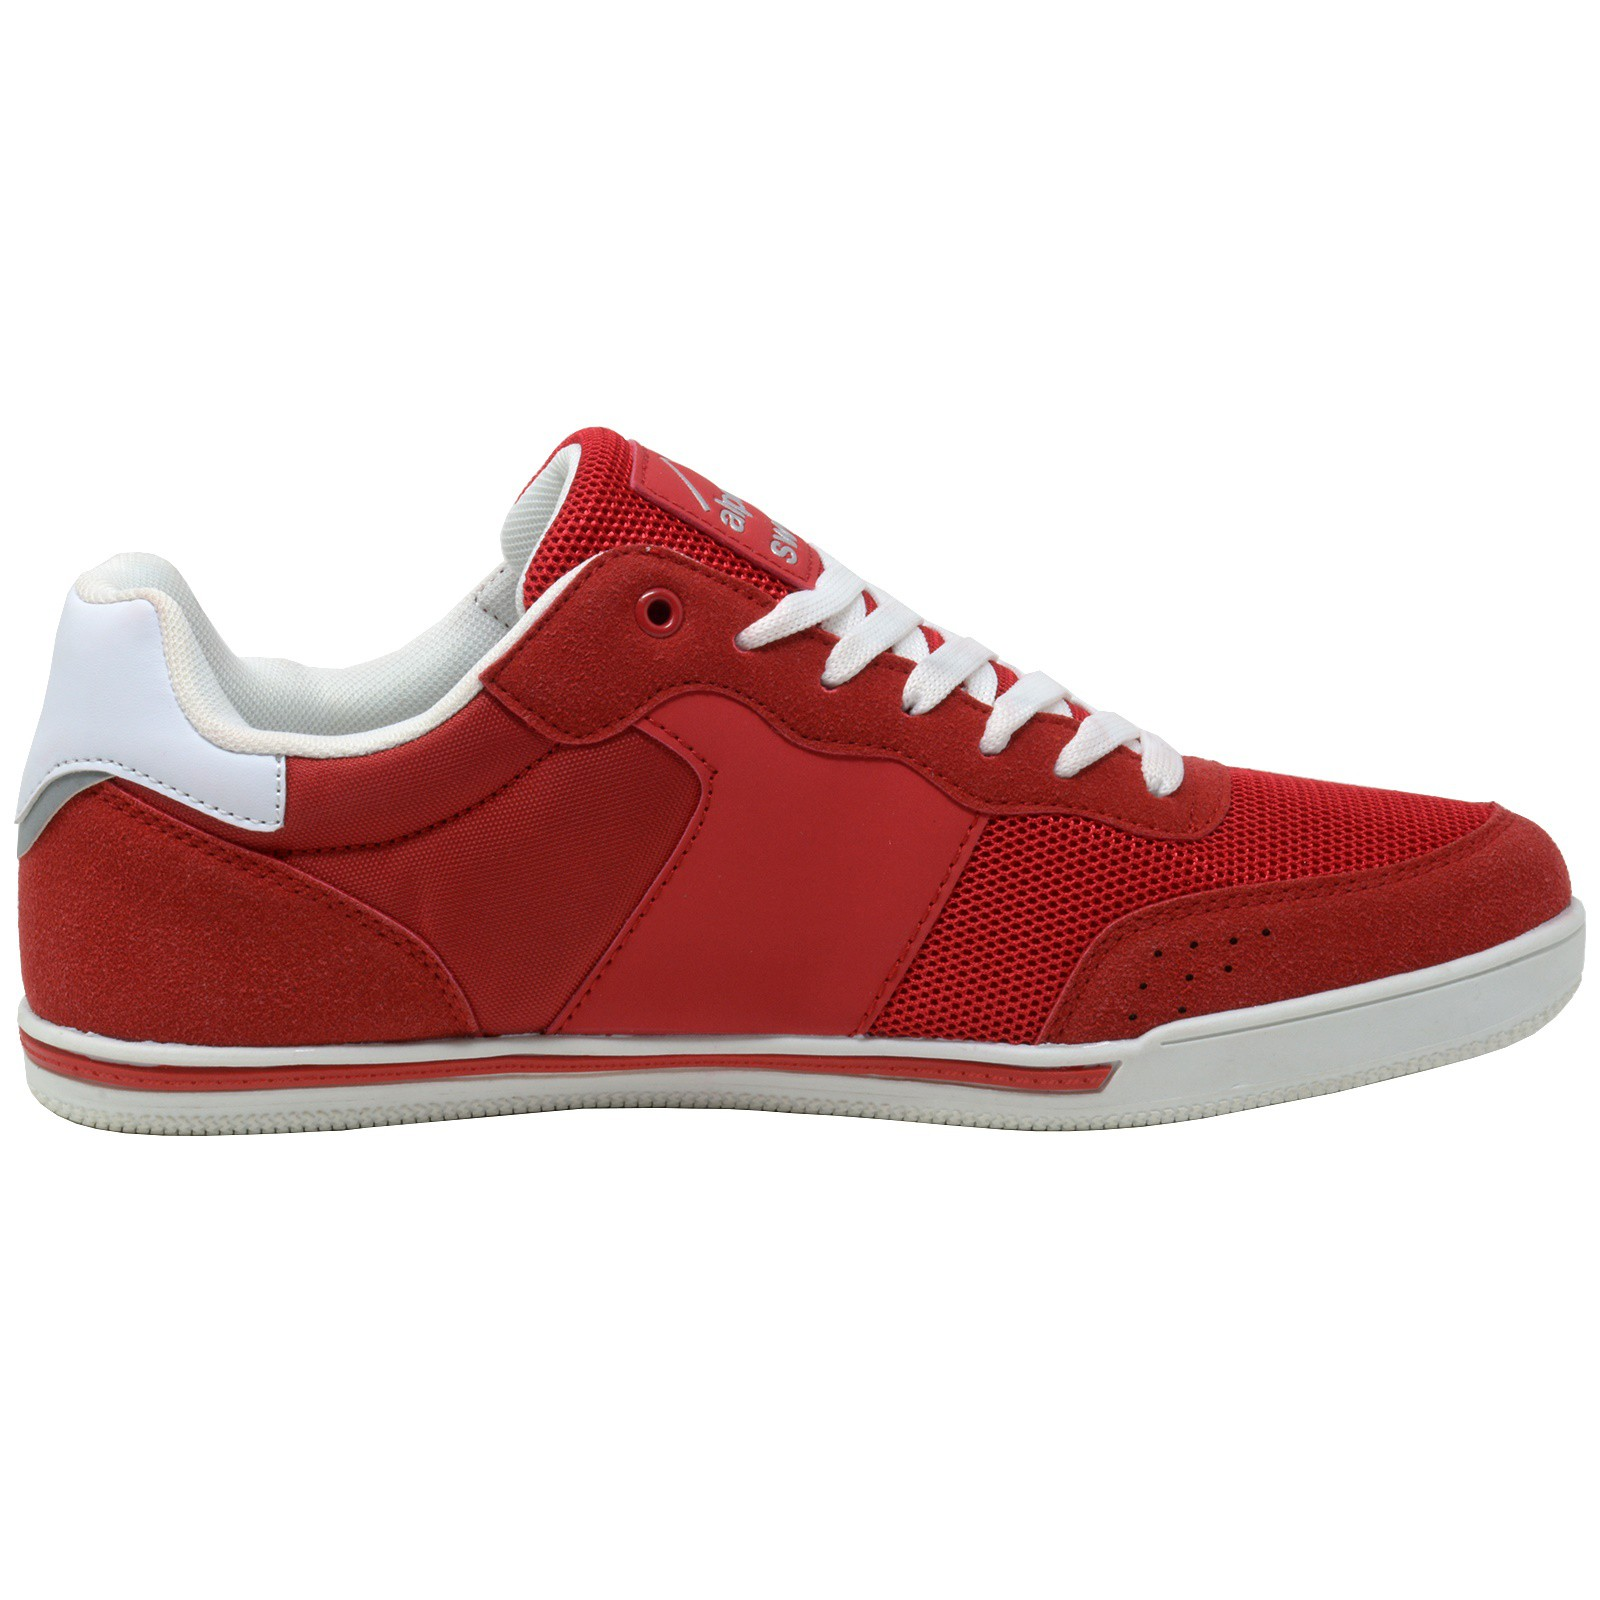 Alpine-Swiss-Liam-Mens-Fashion-Sneakers-Suede-Trim-Low-Top-Lace-Up-Tennis-Shoes thumbnail 52